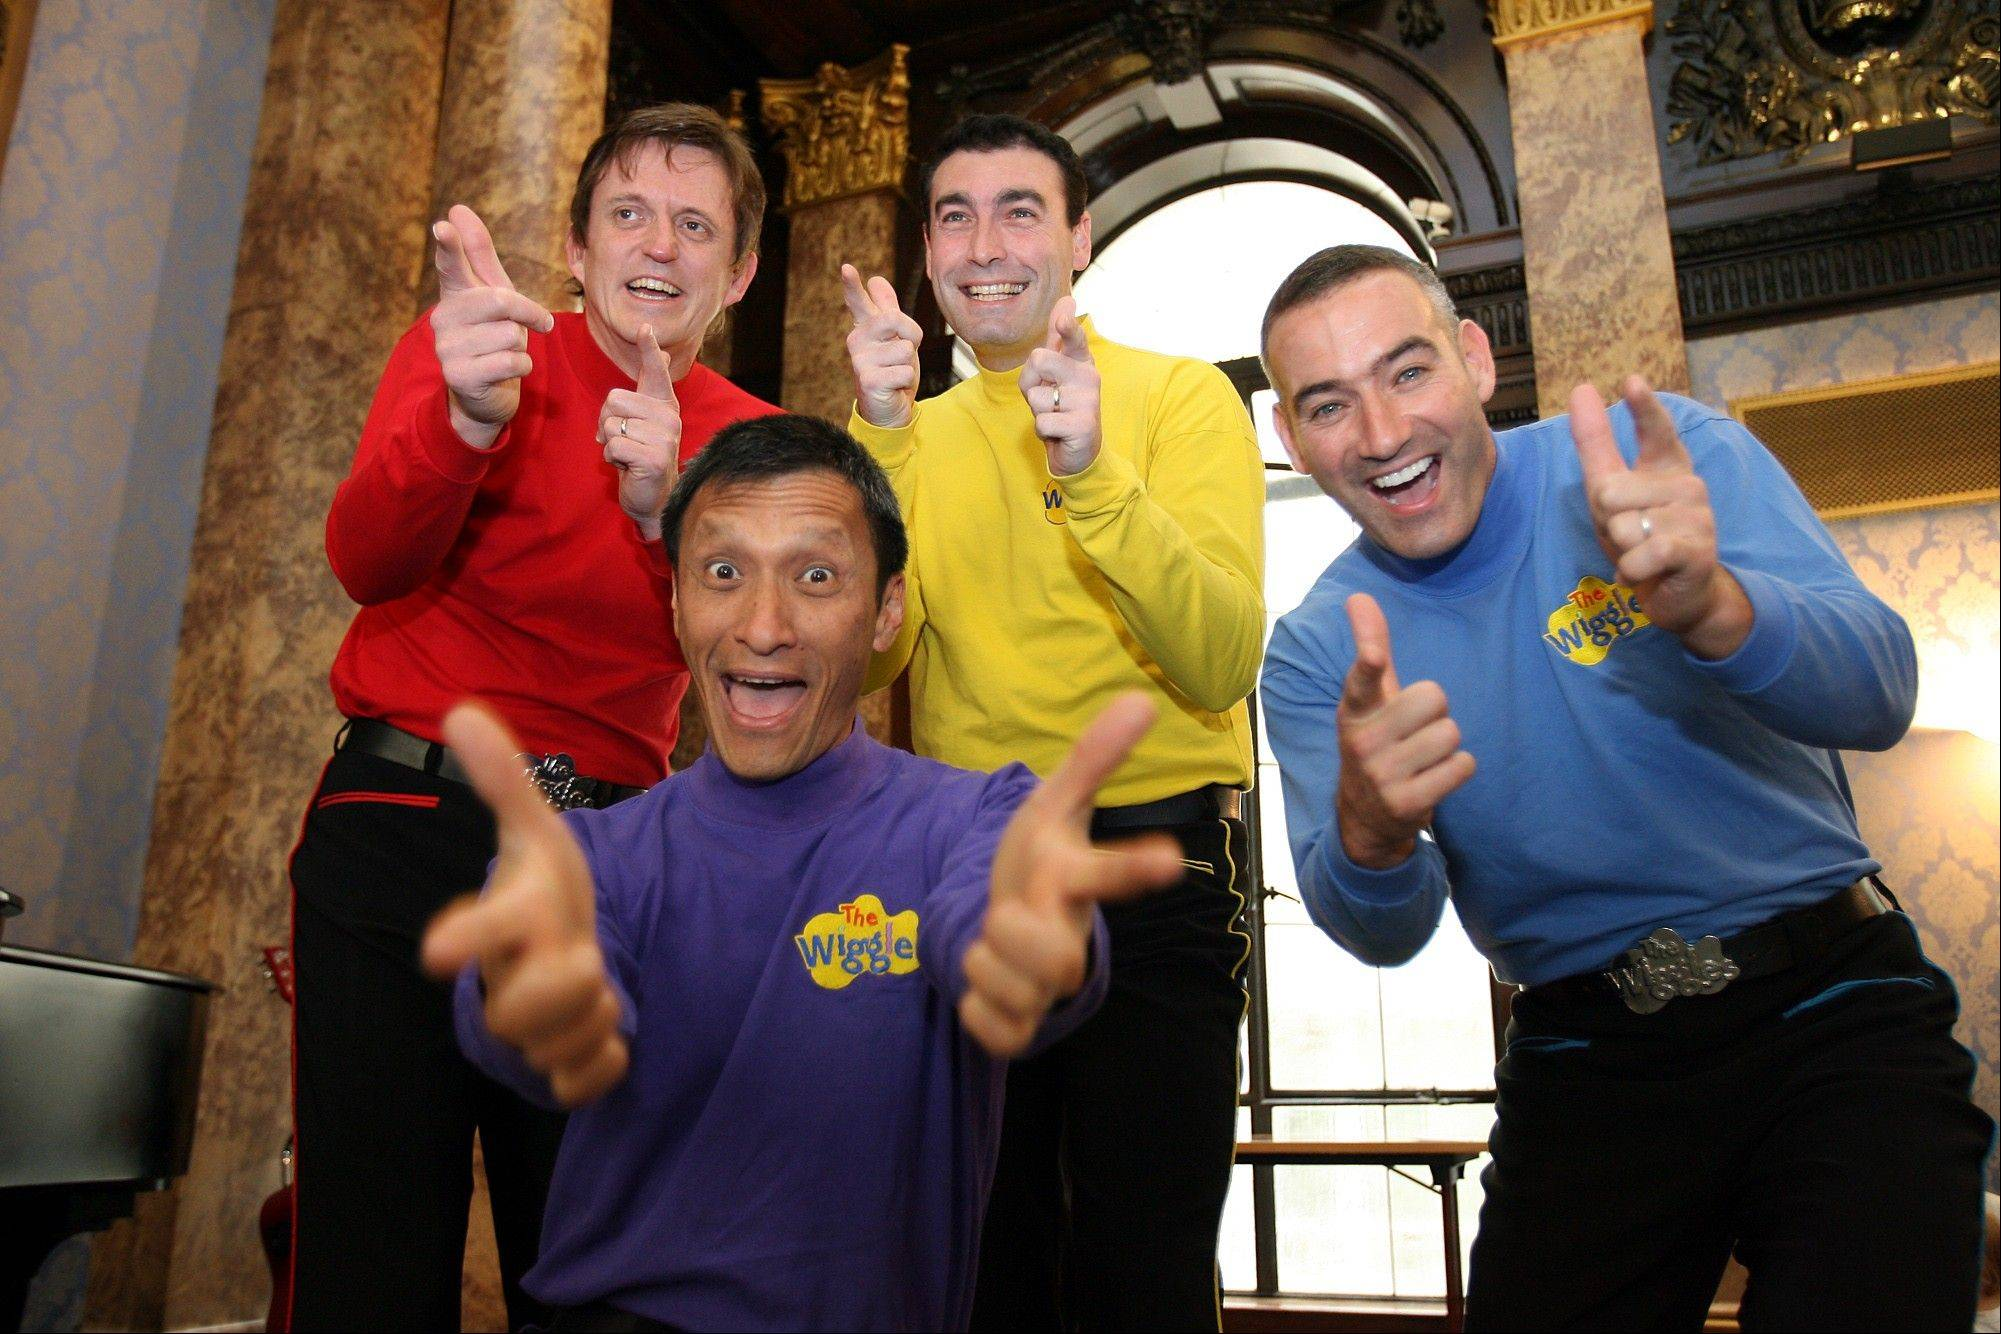 The Wiggles bid adieu to three retiring original members -- Murray Cook (Red Wiggle), Greg Page (Yellow Wiggle) and Jeff Fatt (Purple Wiggle) on a special worldwide tour that comes through Rosemont. Anthony Field (Blue Wiggle) will continue on with the group.